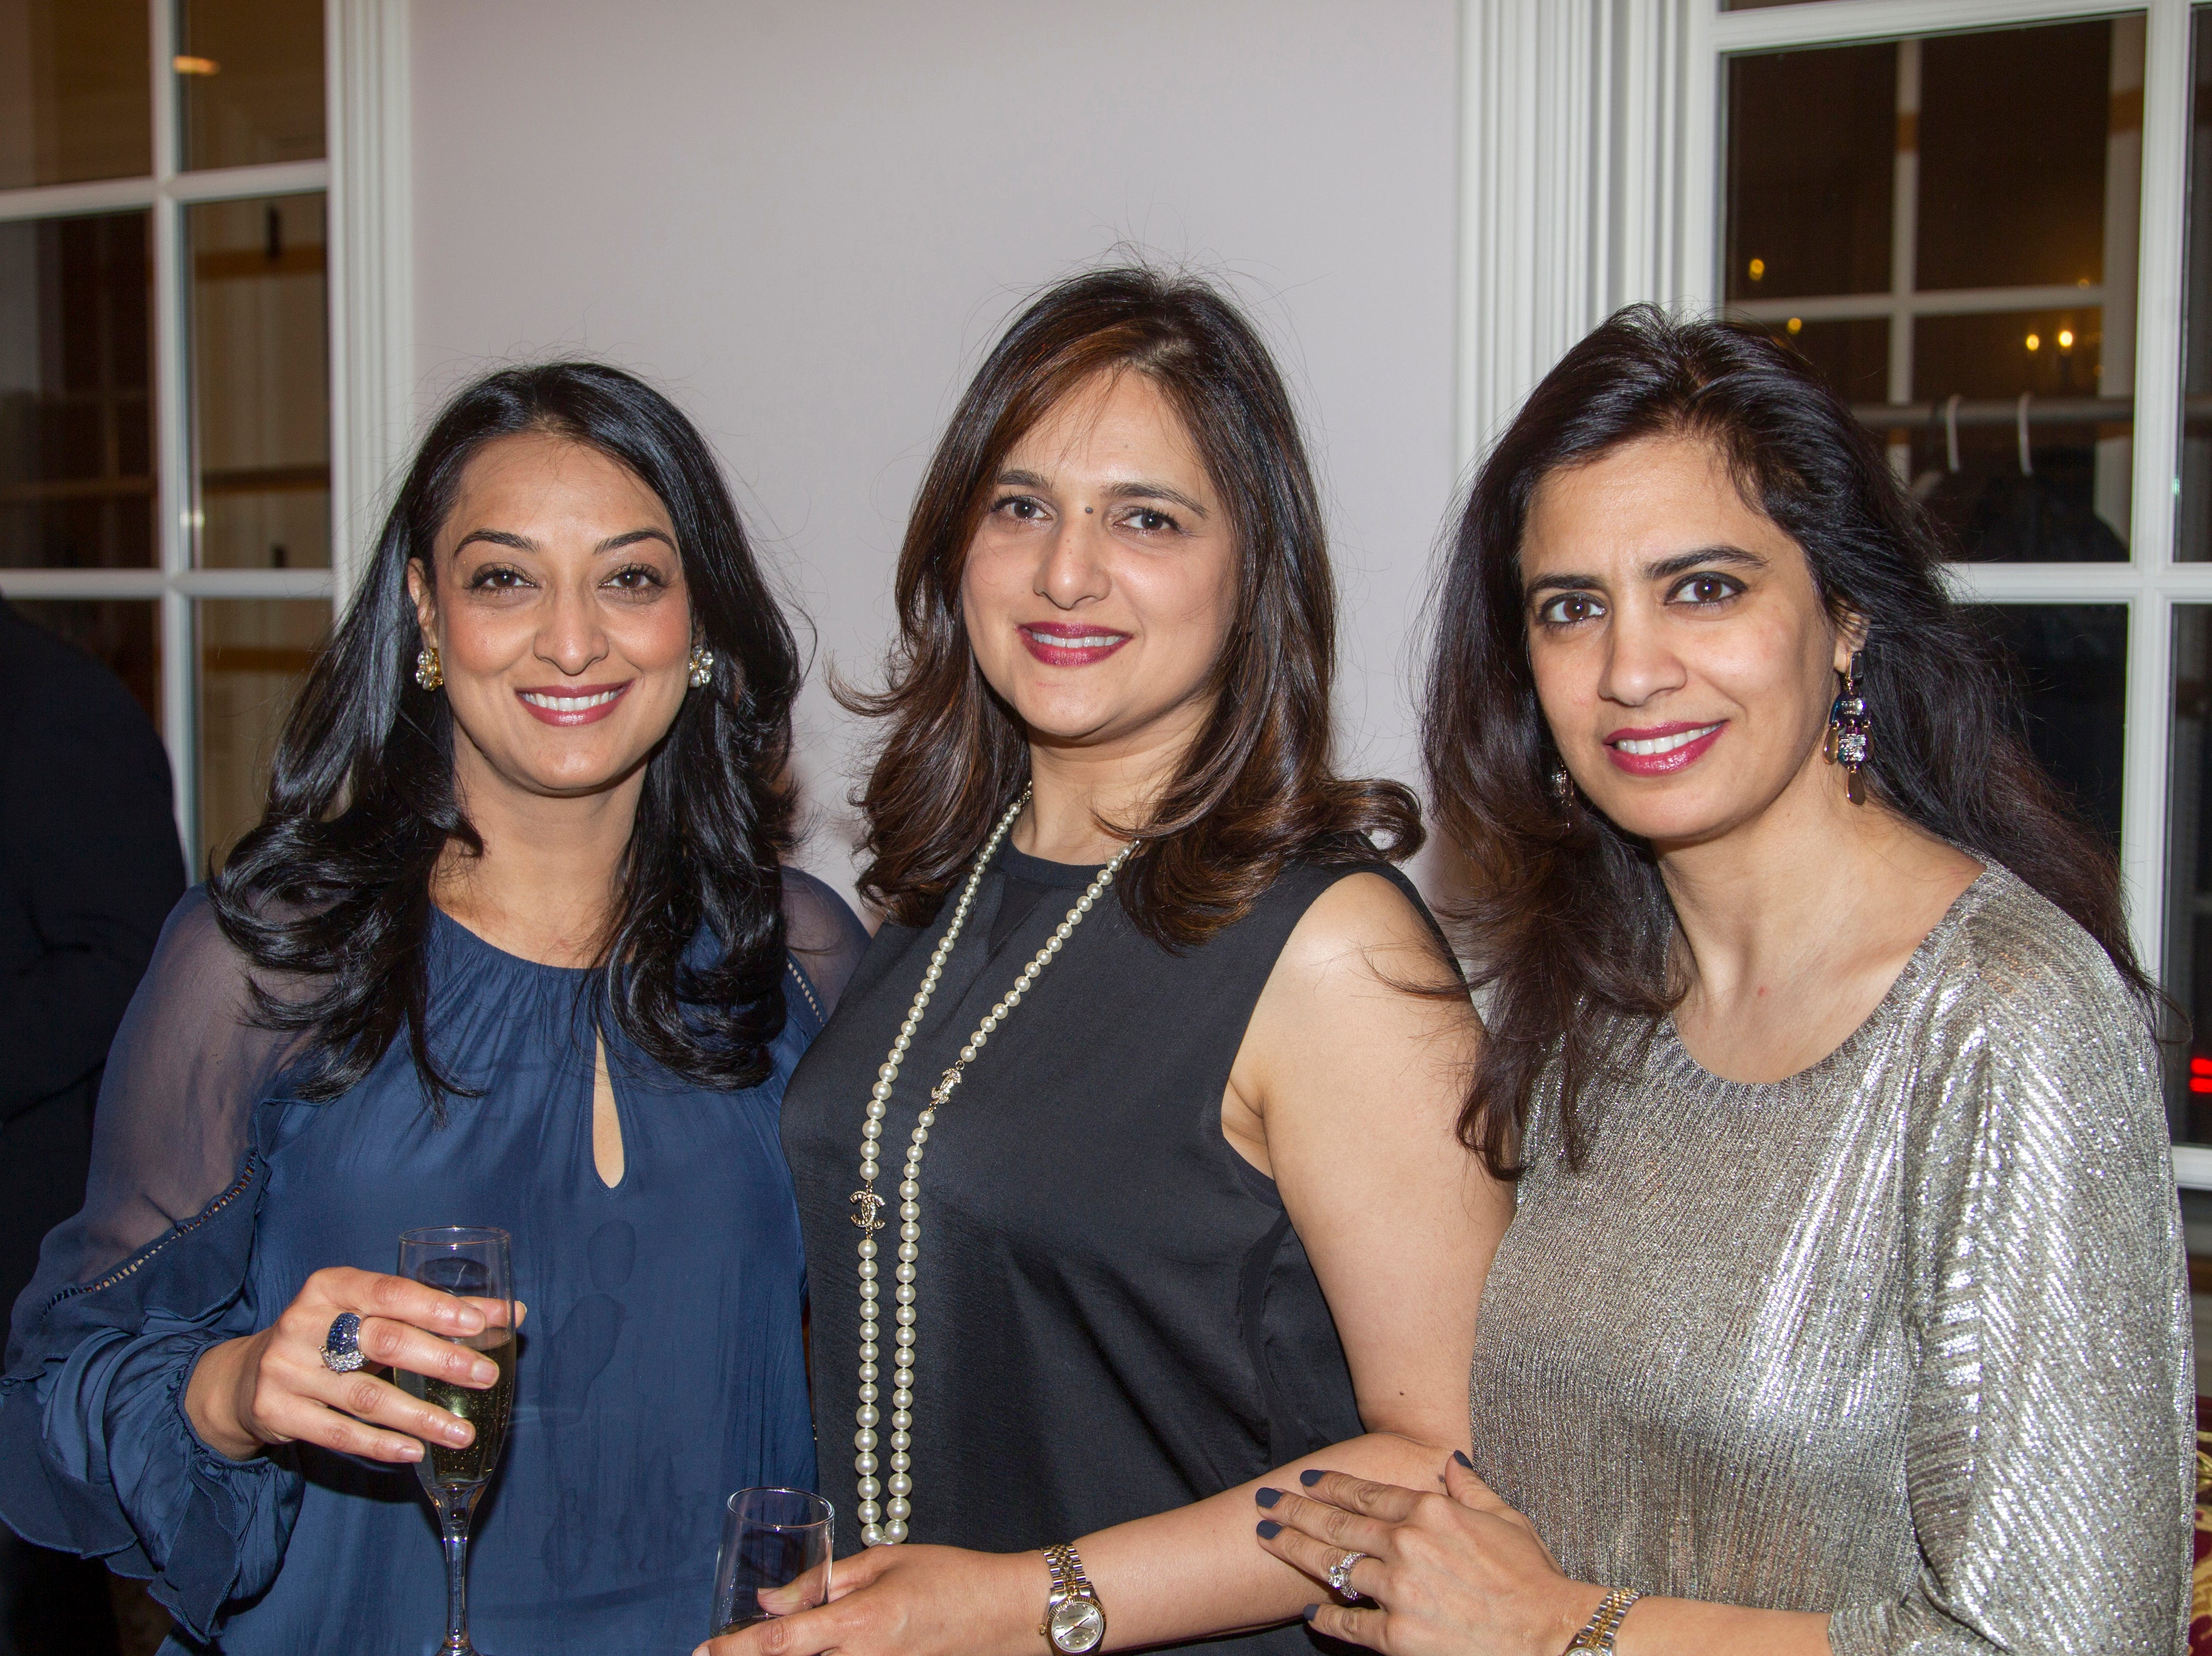 Shalini Tewary, Neena Chima, Pooja Kumar. Saddle River Arts Council presents An Evening of Giving Back featureing Eric Genuis in Saddle River. 03/30/2019